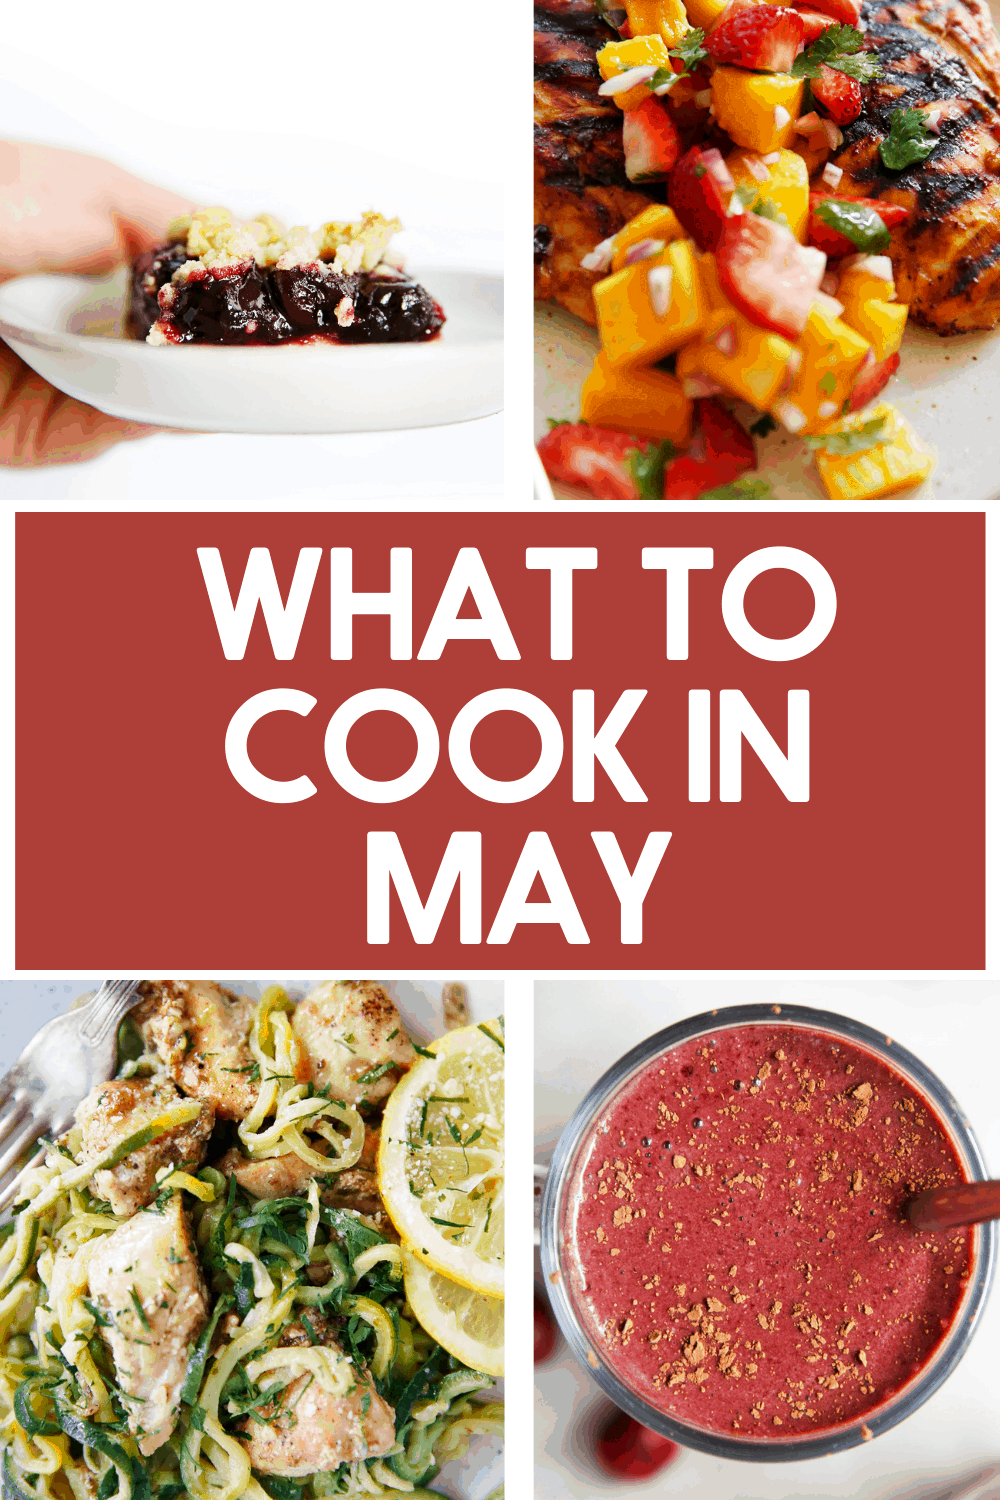 What to cook in may